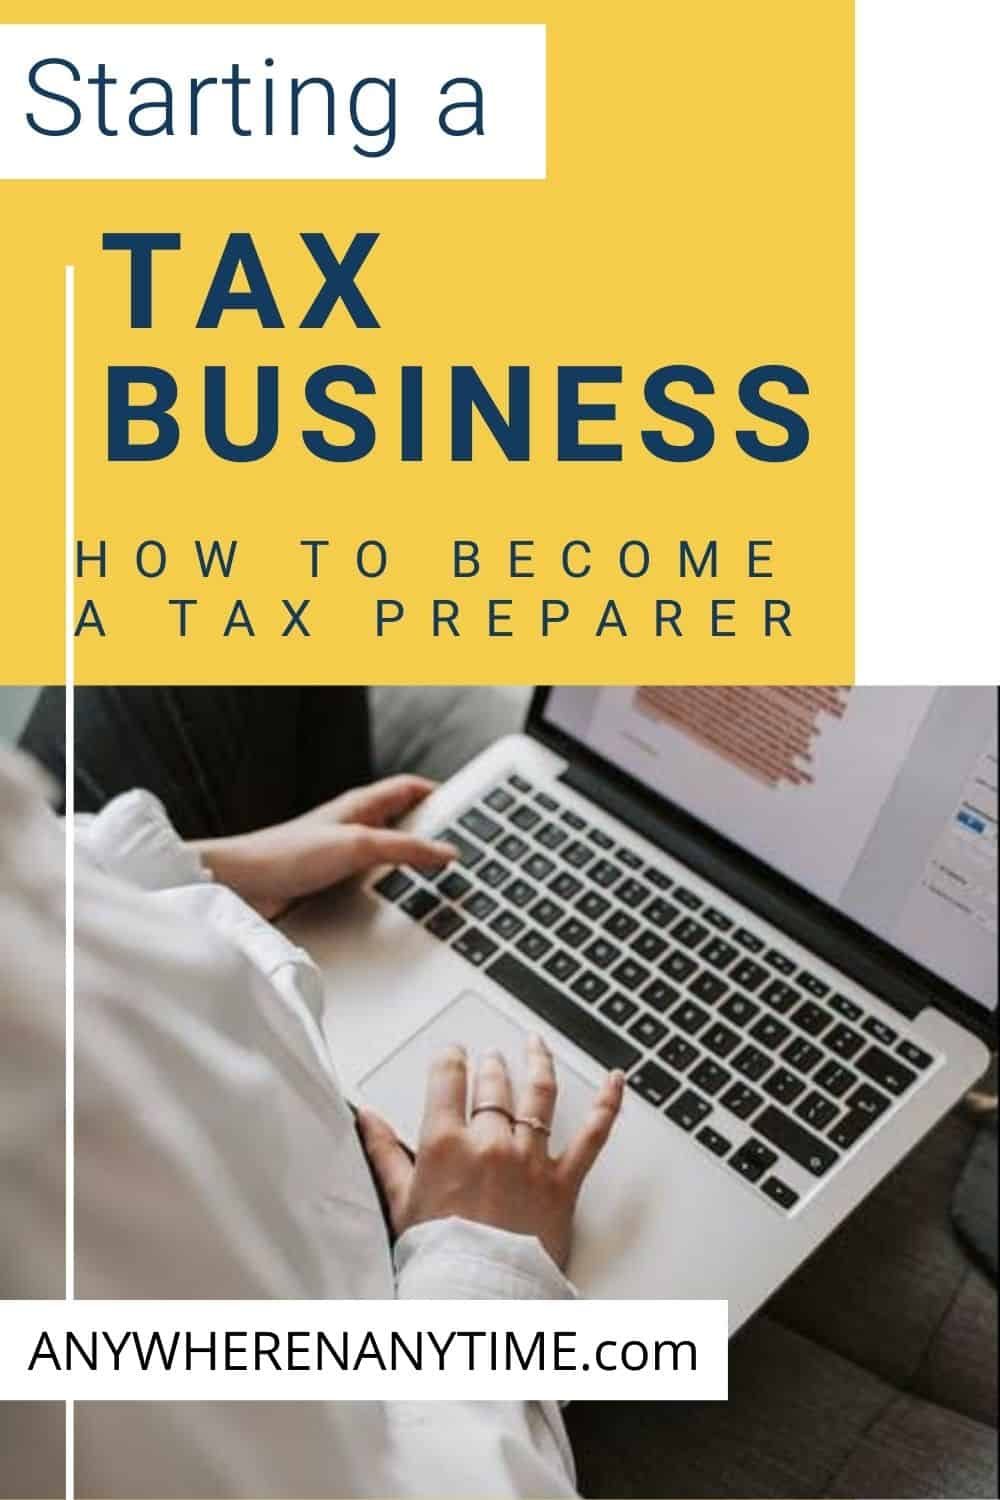 How to Become a Tax Preparer Online with TaxBiz!